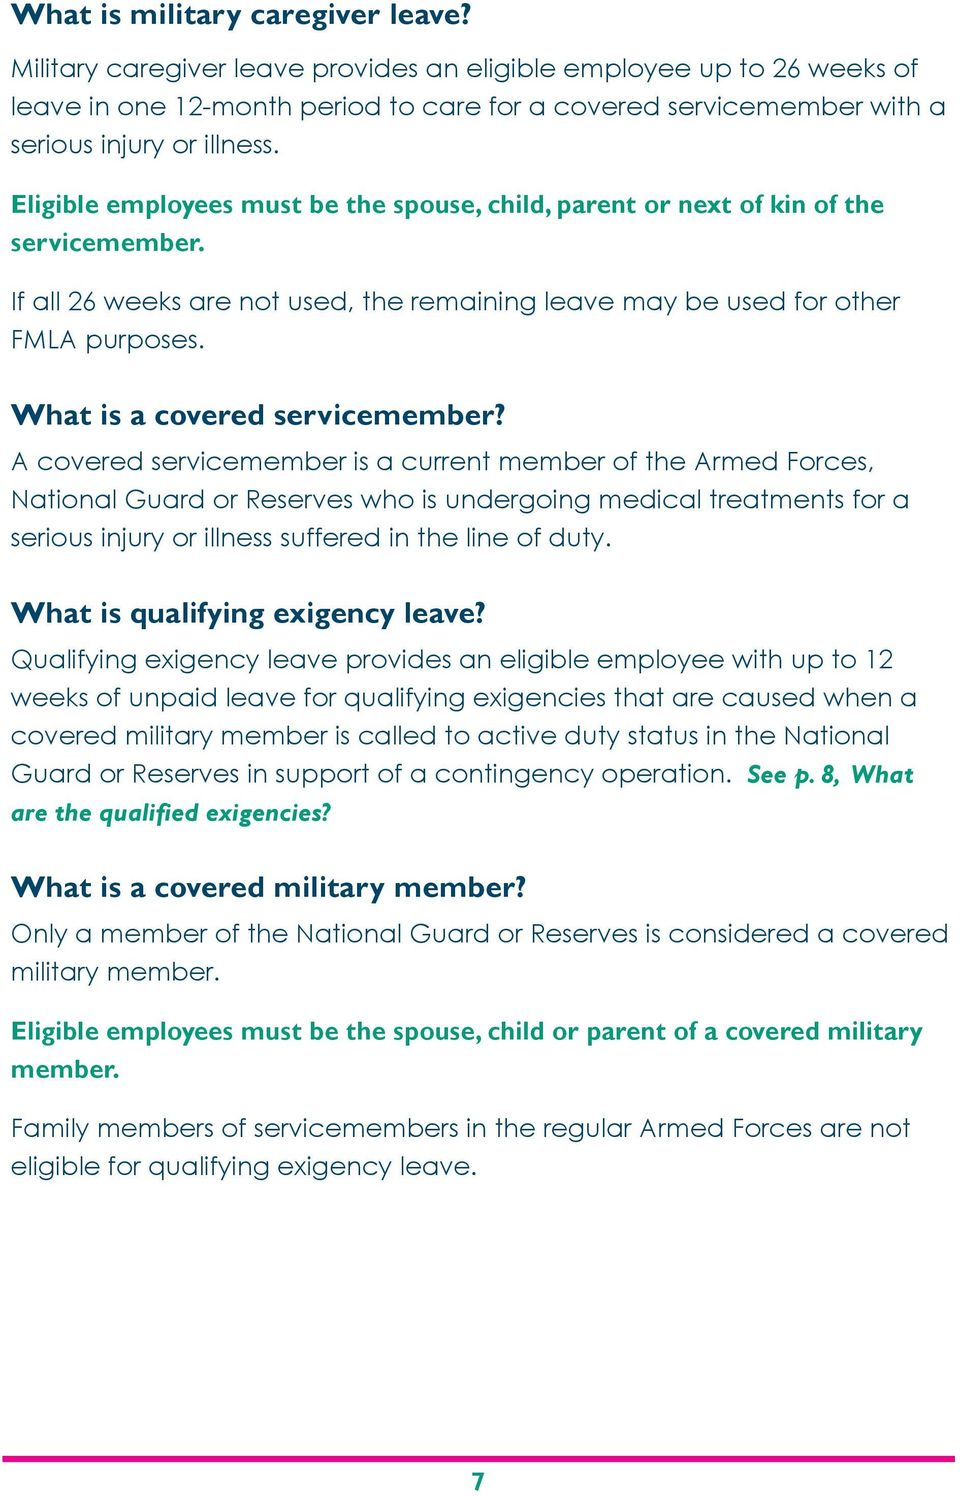 Eligible employees must be the spouse, child, parent or next of kin of the servicemember. If all 26 weeks are not used, the remaining leave may be used for other FMLA purposes.